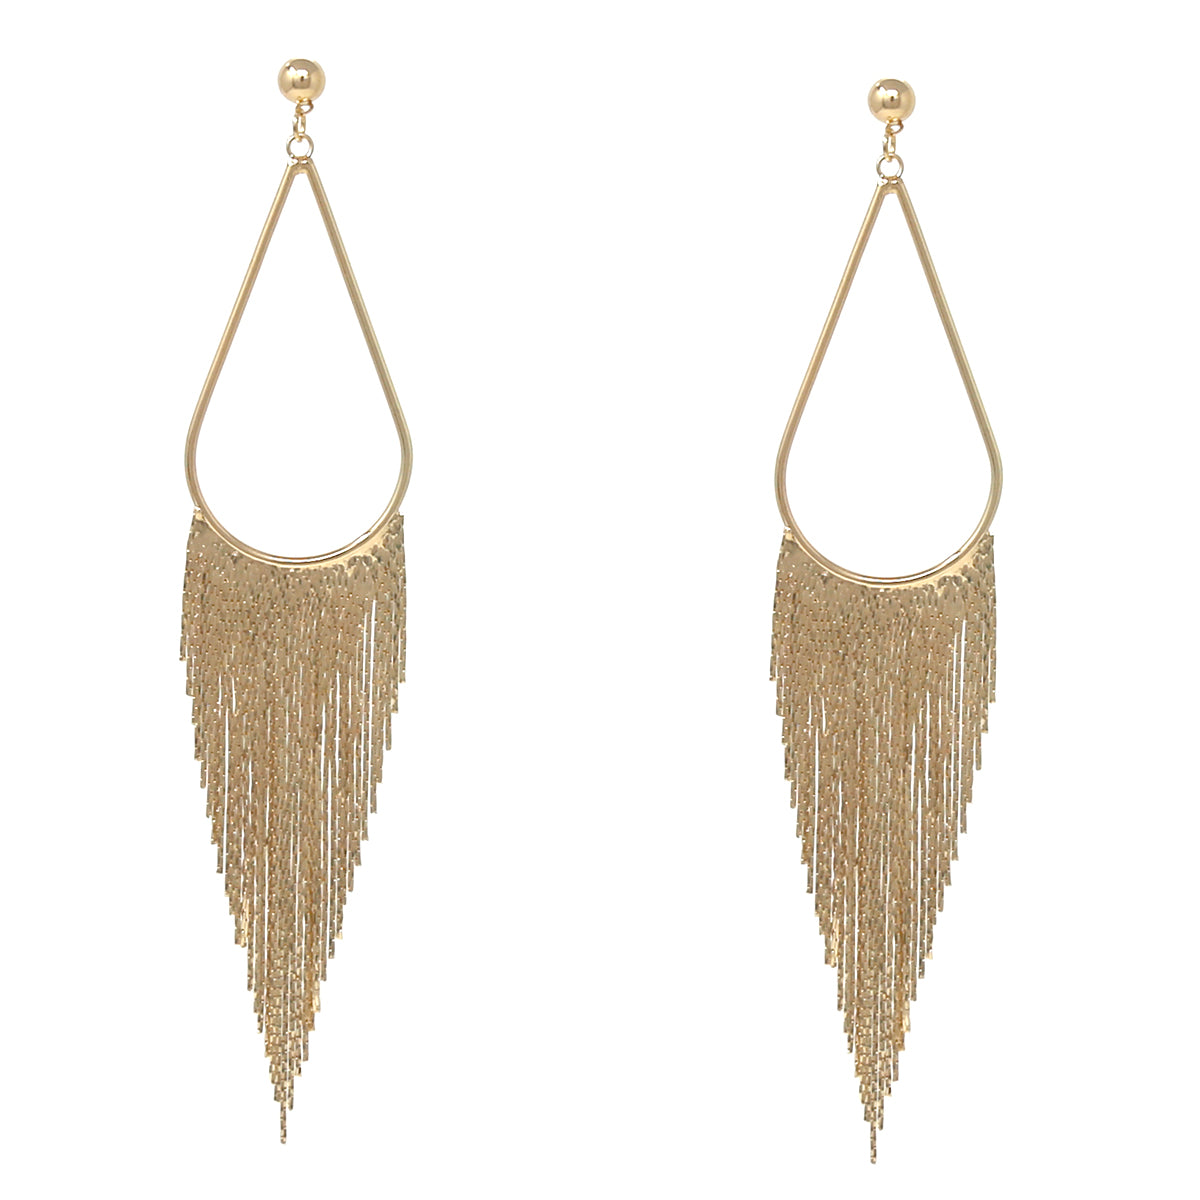 Teardrop Hoop Snake Chain Fringe Drop Earrings